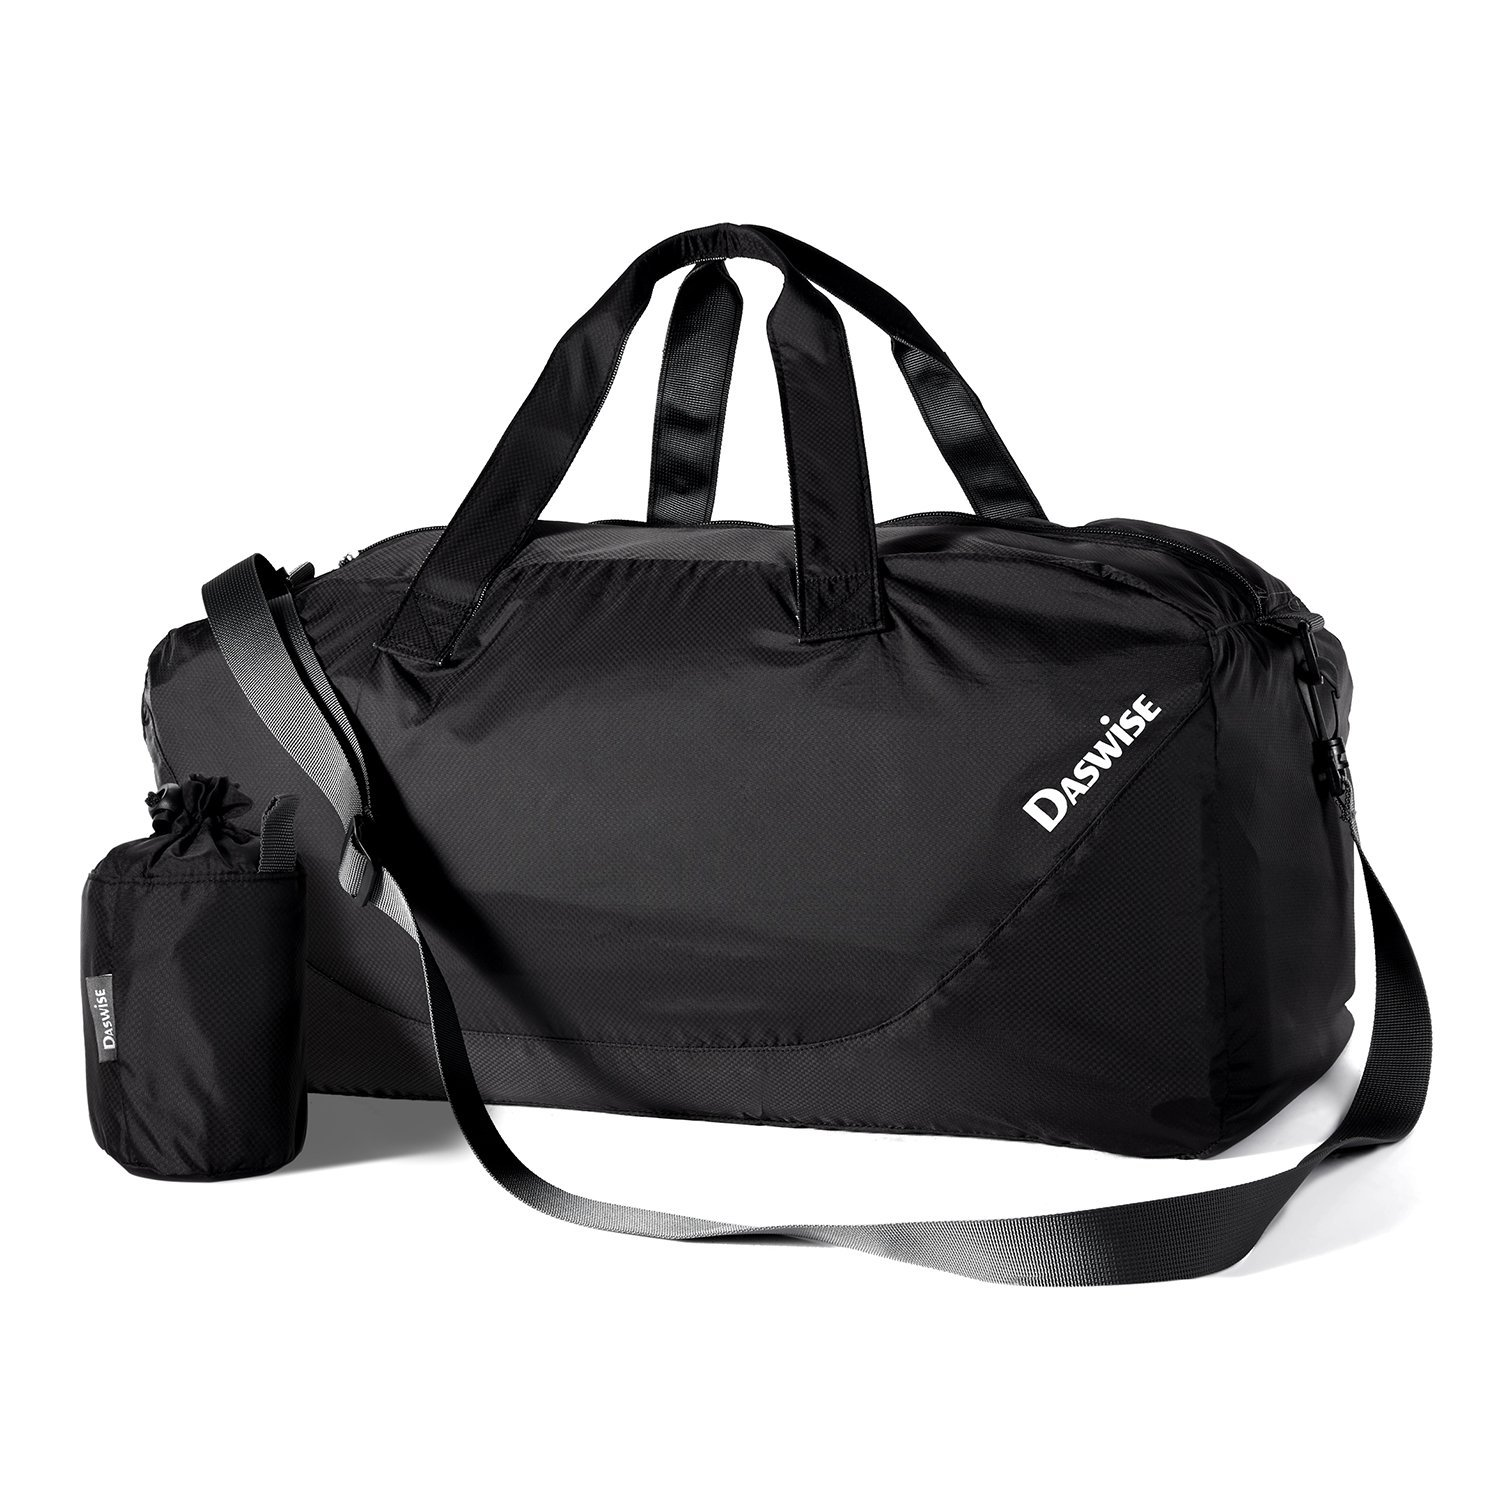 Duffel Bag Foldable, Daswise Travel Sporty Gear Bags with Pockets Keep Personal Documents, Phones & Other Essentials Safe - Best for Travelers & Gym Enthusiasts- Made of Tear-resistant Waterproof Nylon, Lightweight, Durable & Fashionable, 3 Colors